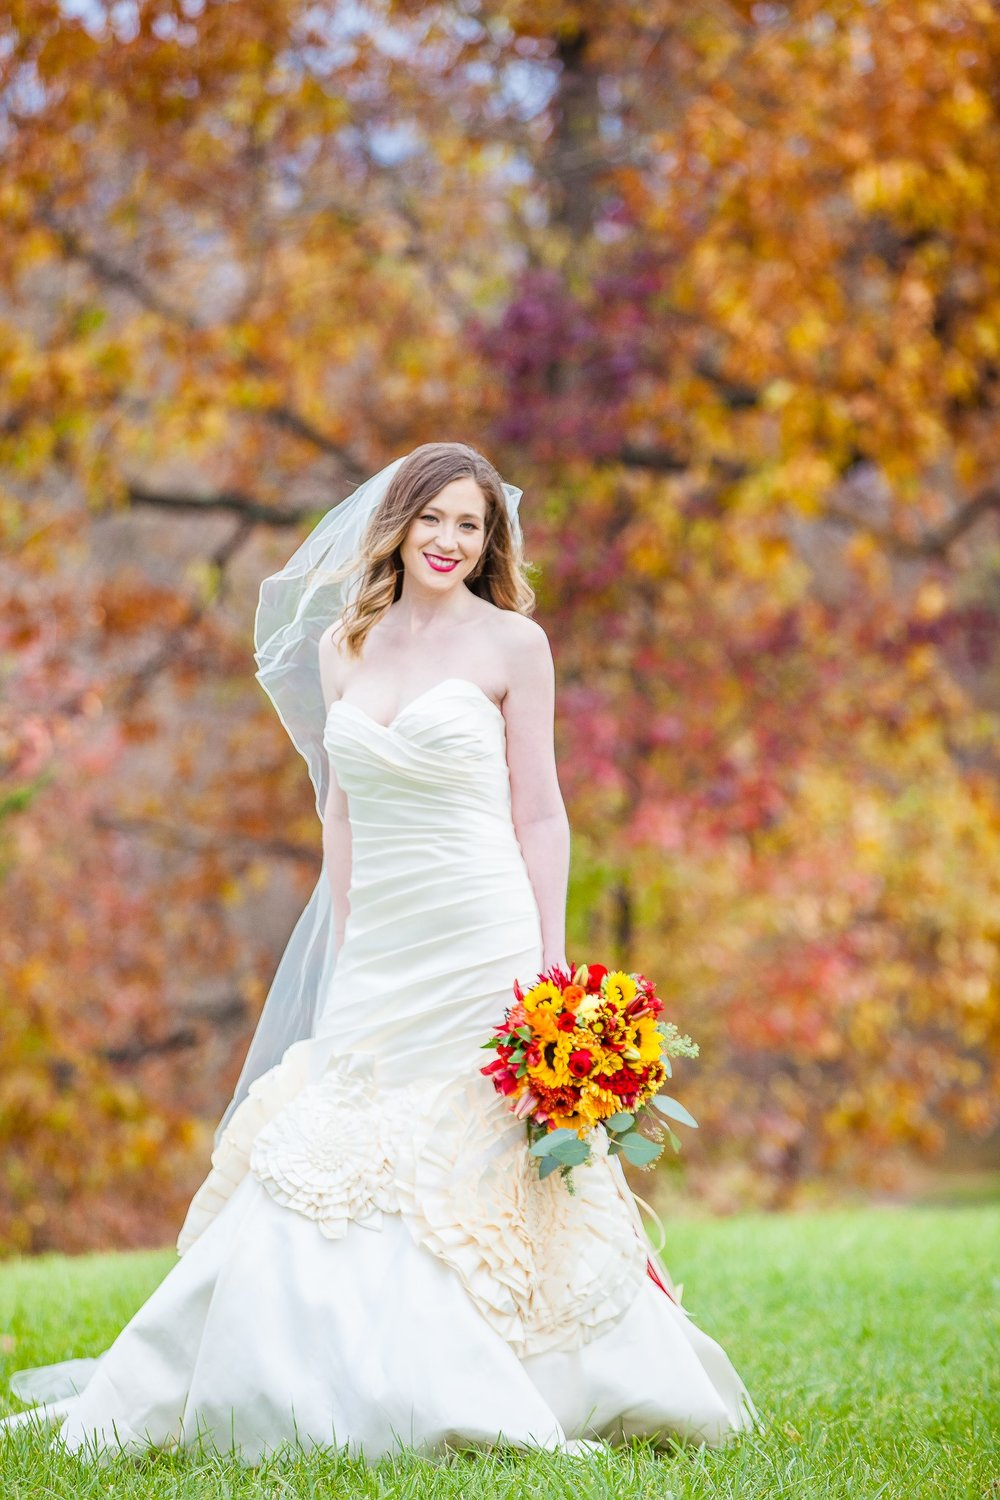 ACStudio_Styled_Autumn-Bride (15).jpg